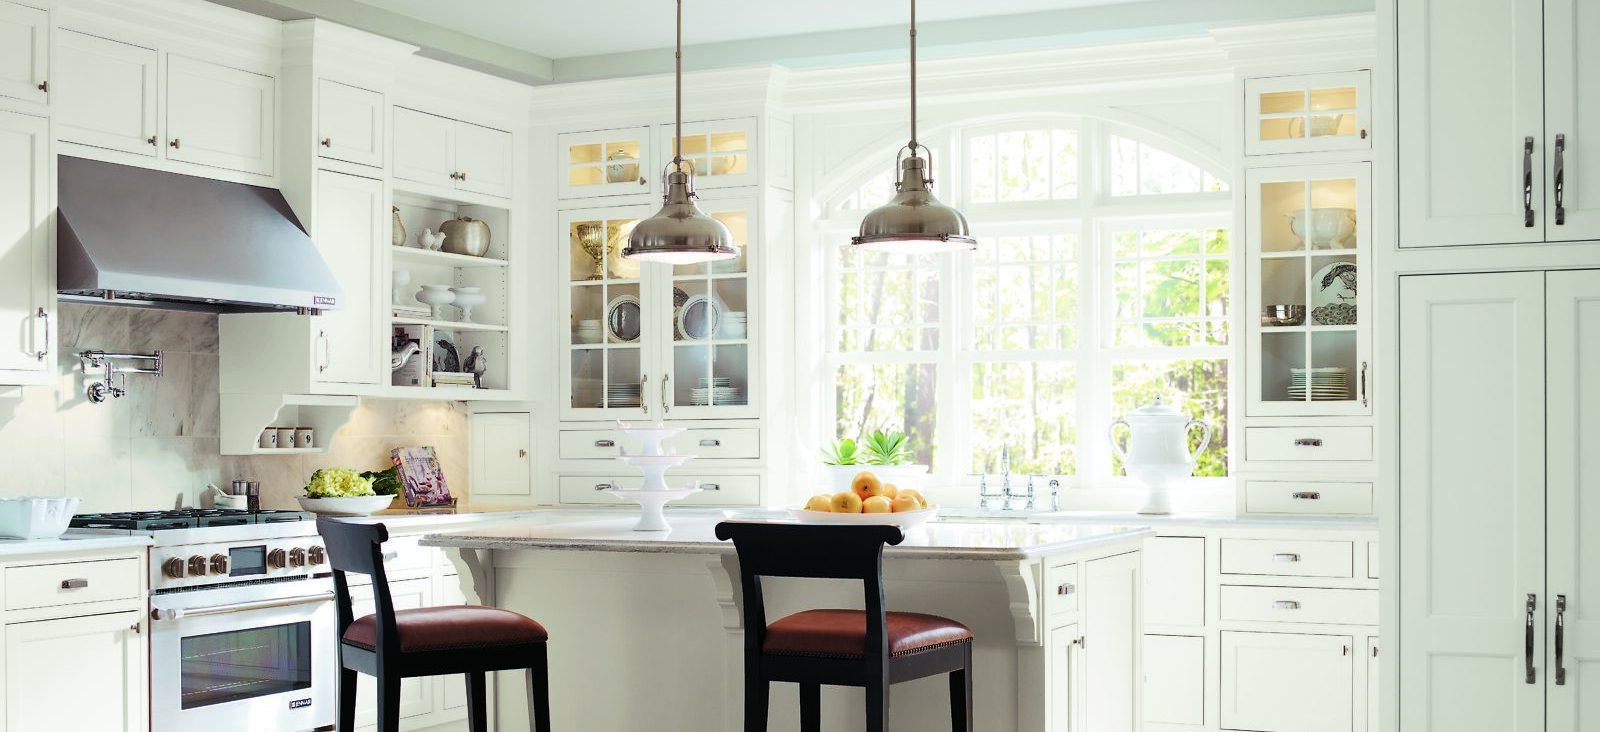 Why Choose Inset Cabinetry?